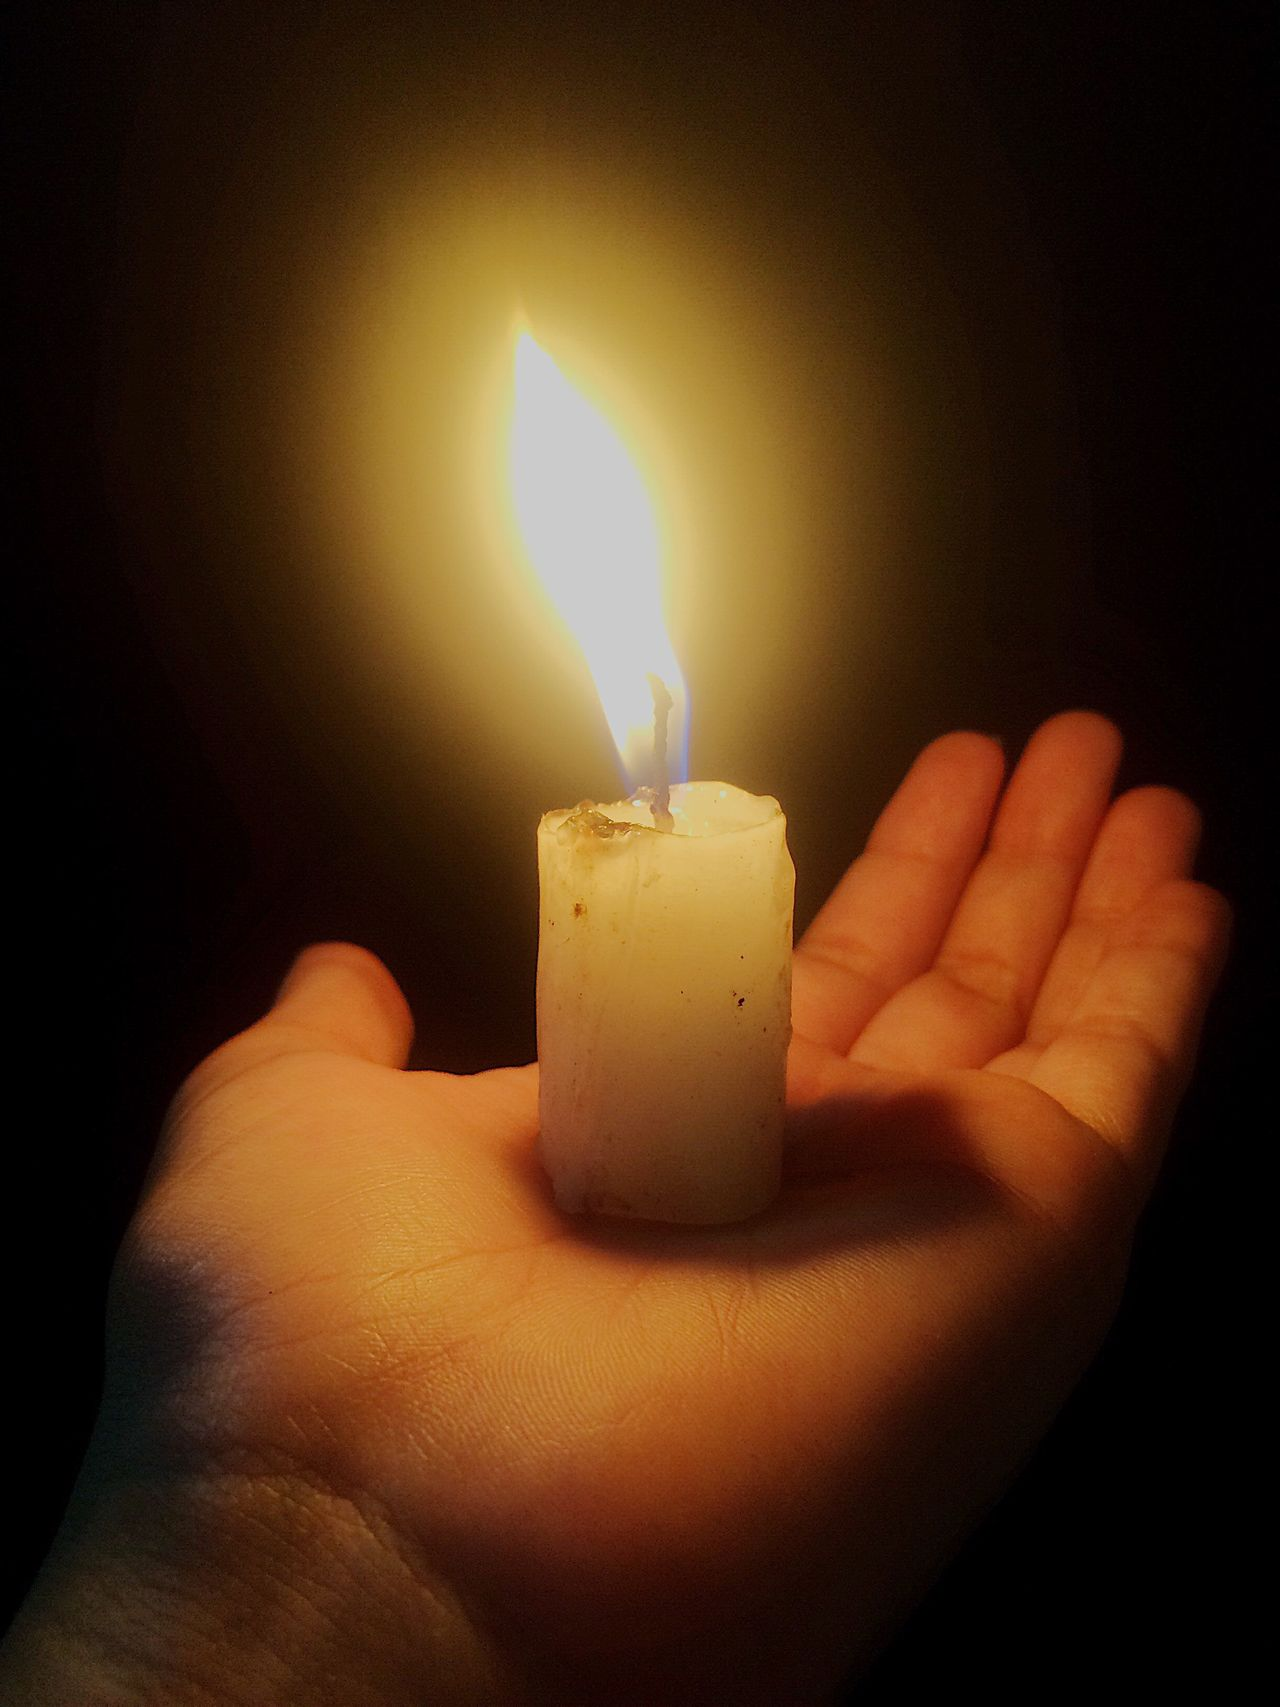 Candle Candles Candle Night Candles.❤ Human Hand Burning Flame Human Body Part Unrecognizable Person Heat - Temperature Holding One Person Human Finger Glowing Igniting Personal Perspective Close-up Candle Indoors  Illuminated Real People